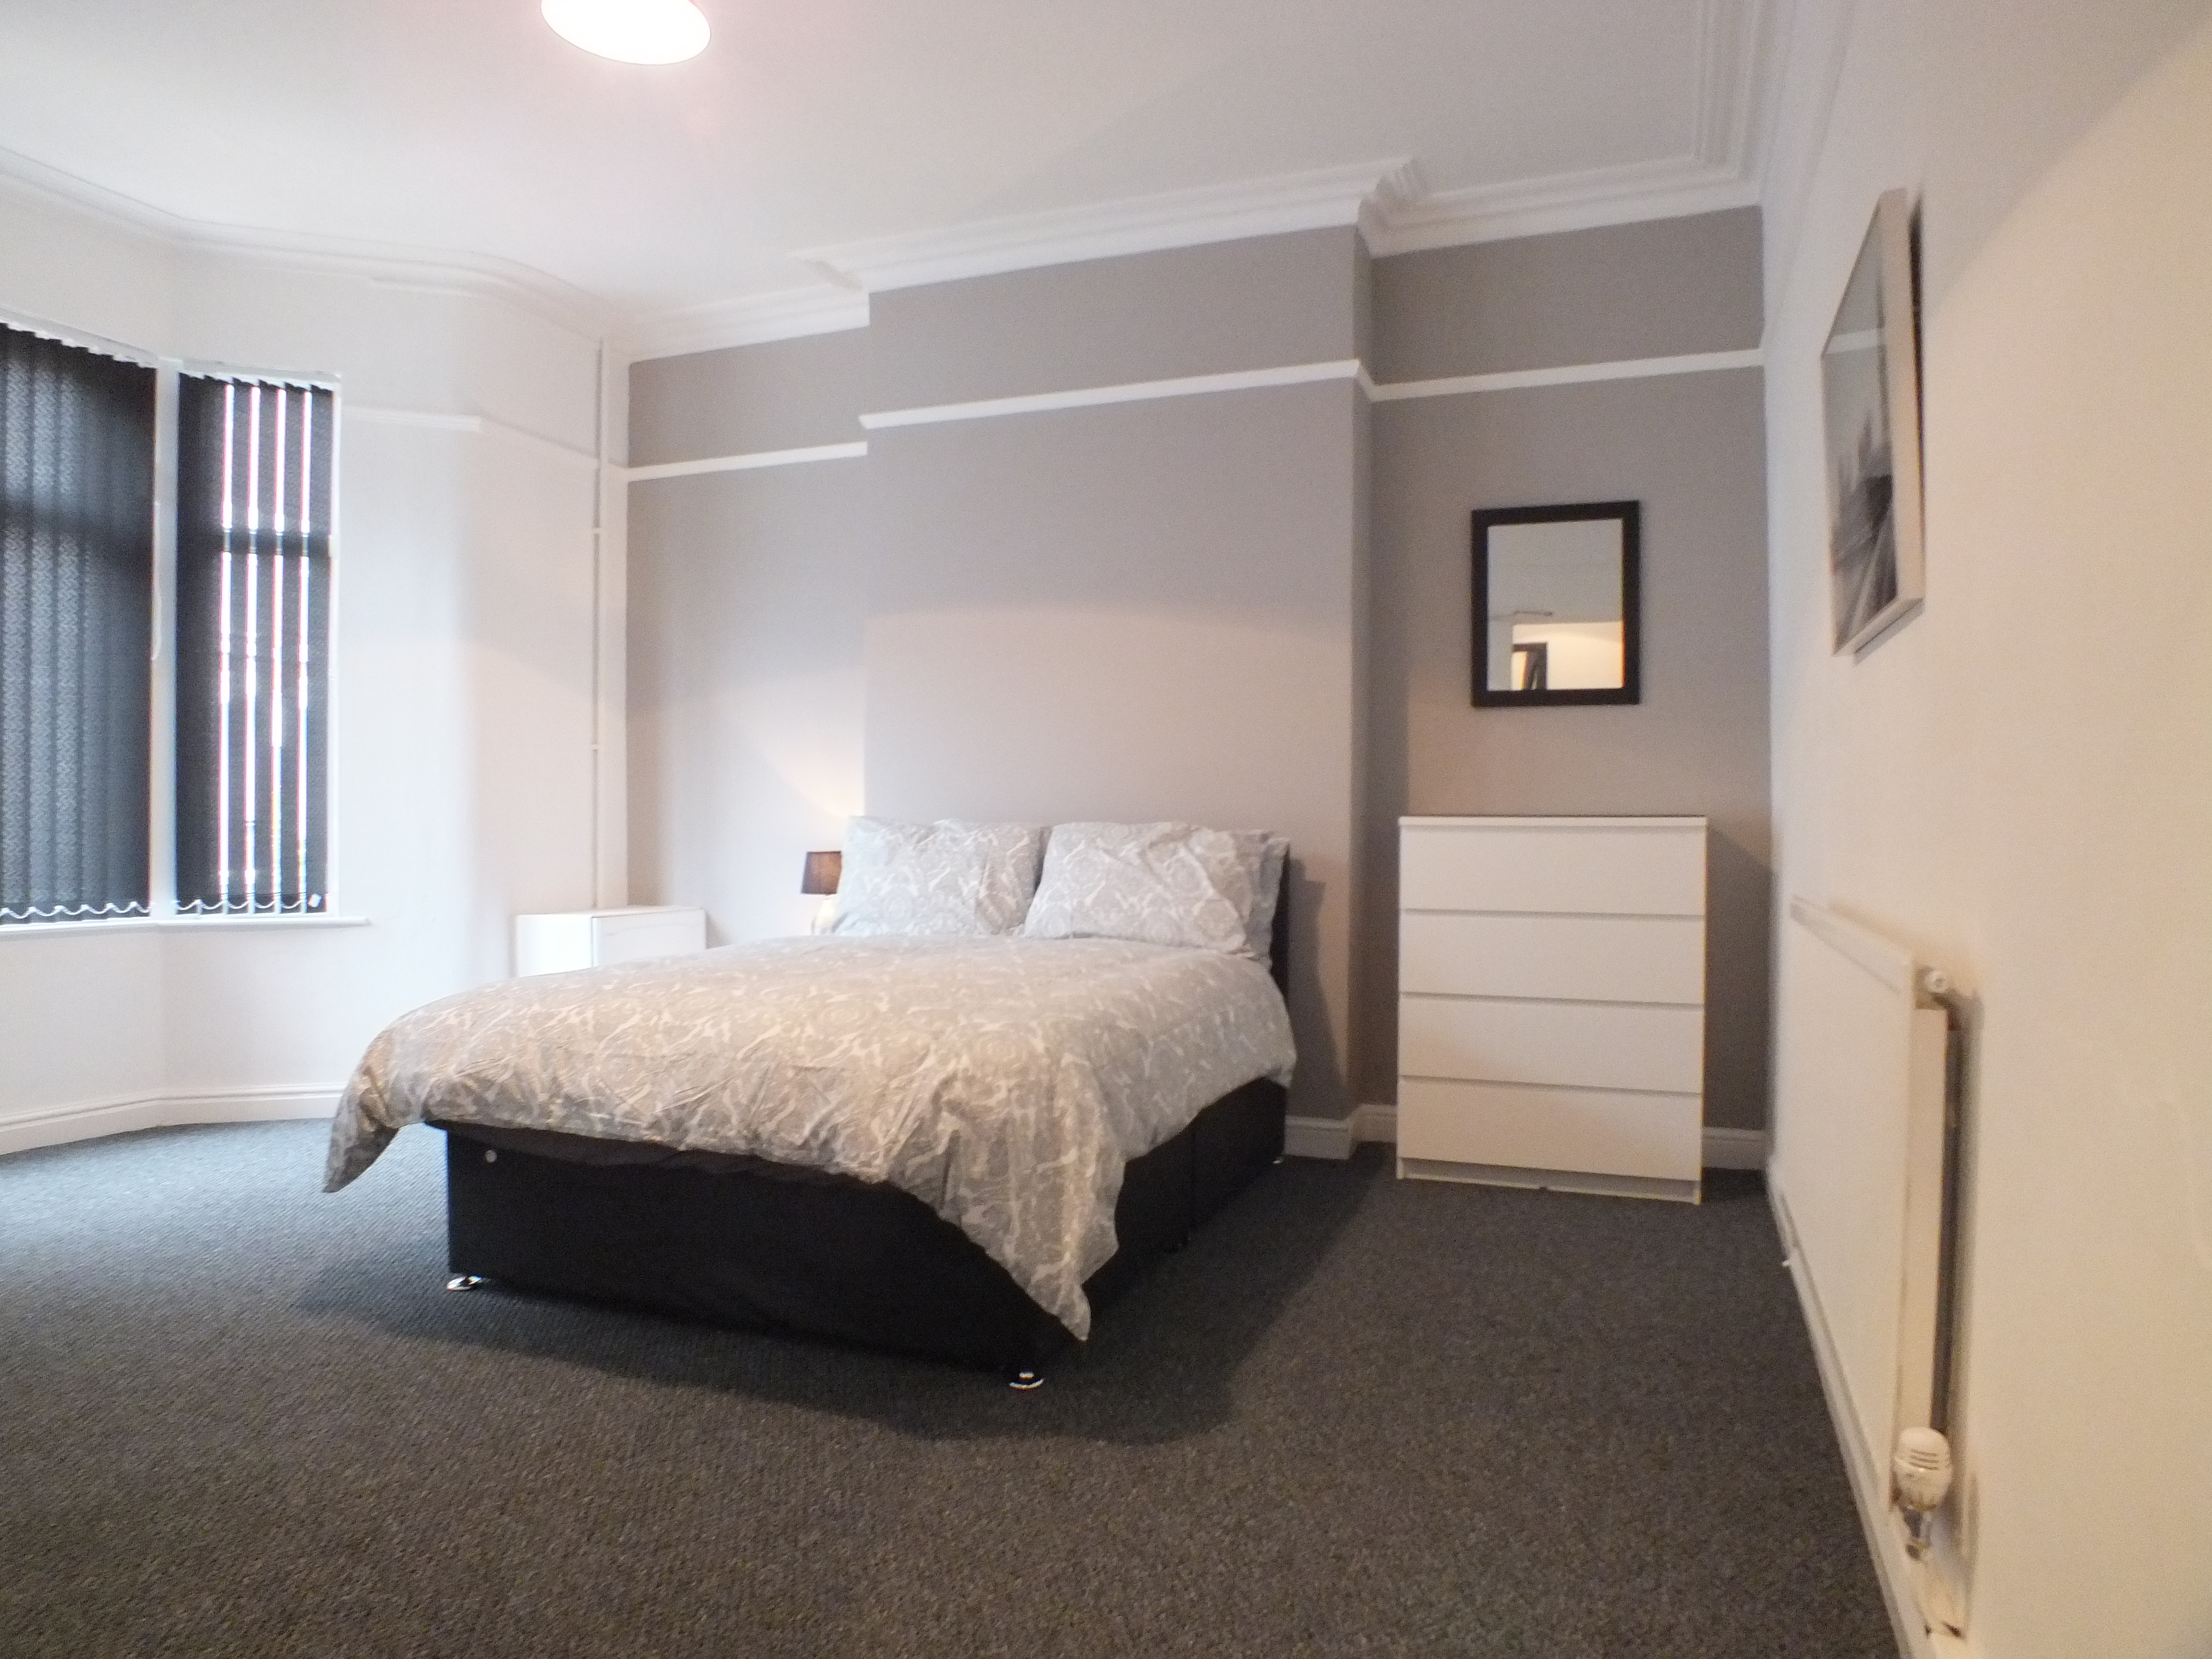 Large Double Room to Rent – Walthall Street, Crewe